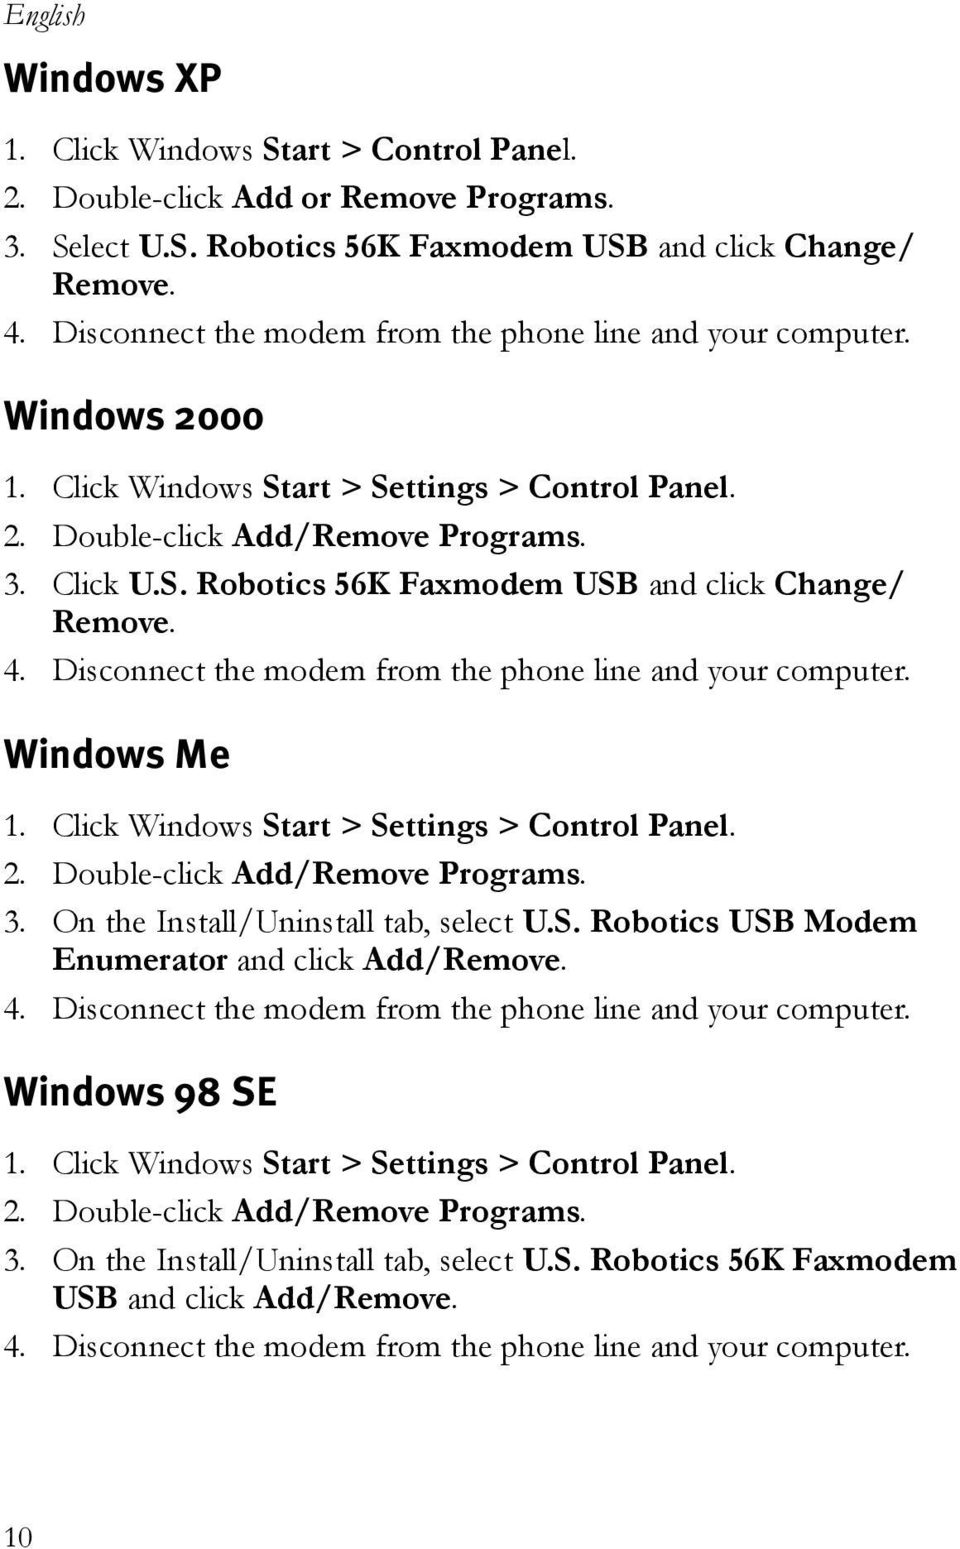 4. Disconnect the modem from the phone line and your computer. Windows Me 1. Click Windows Start > Settings > Control Panel. 2. Double-click Add/Remove Programs. 3.